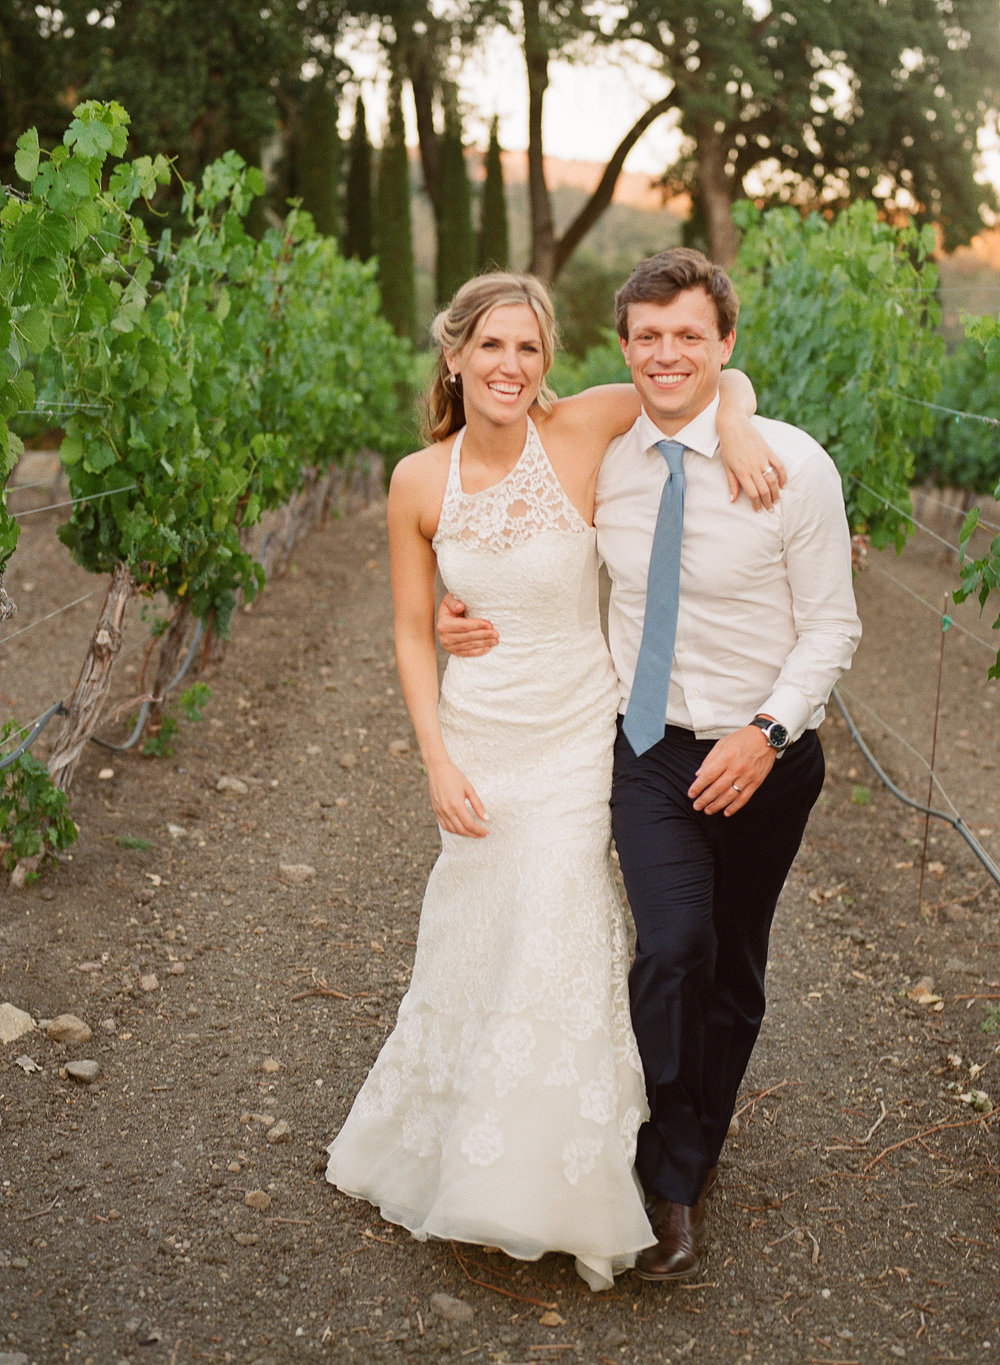 43-bride-groom-vineyard.jpg